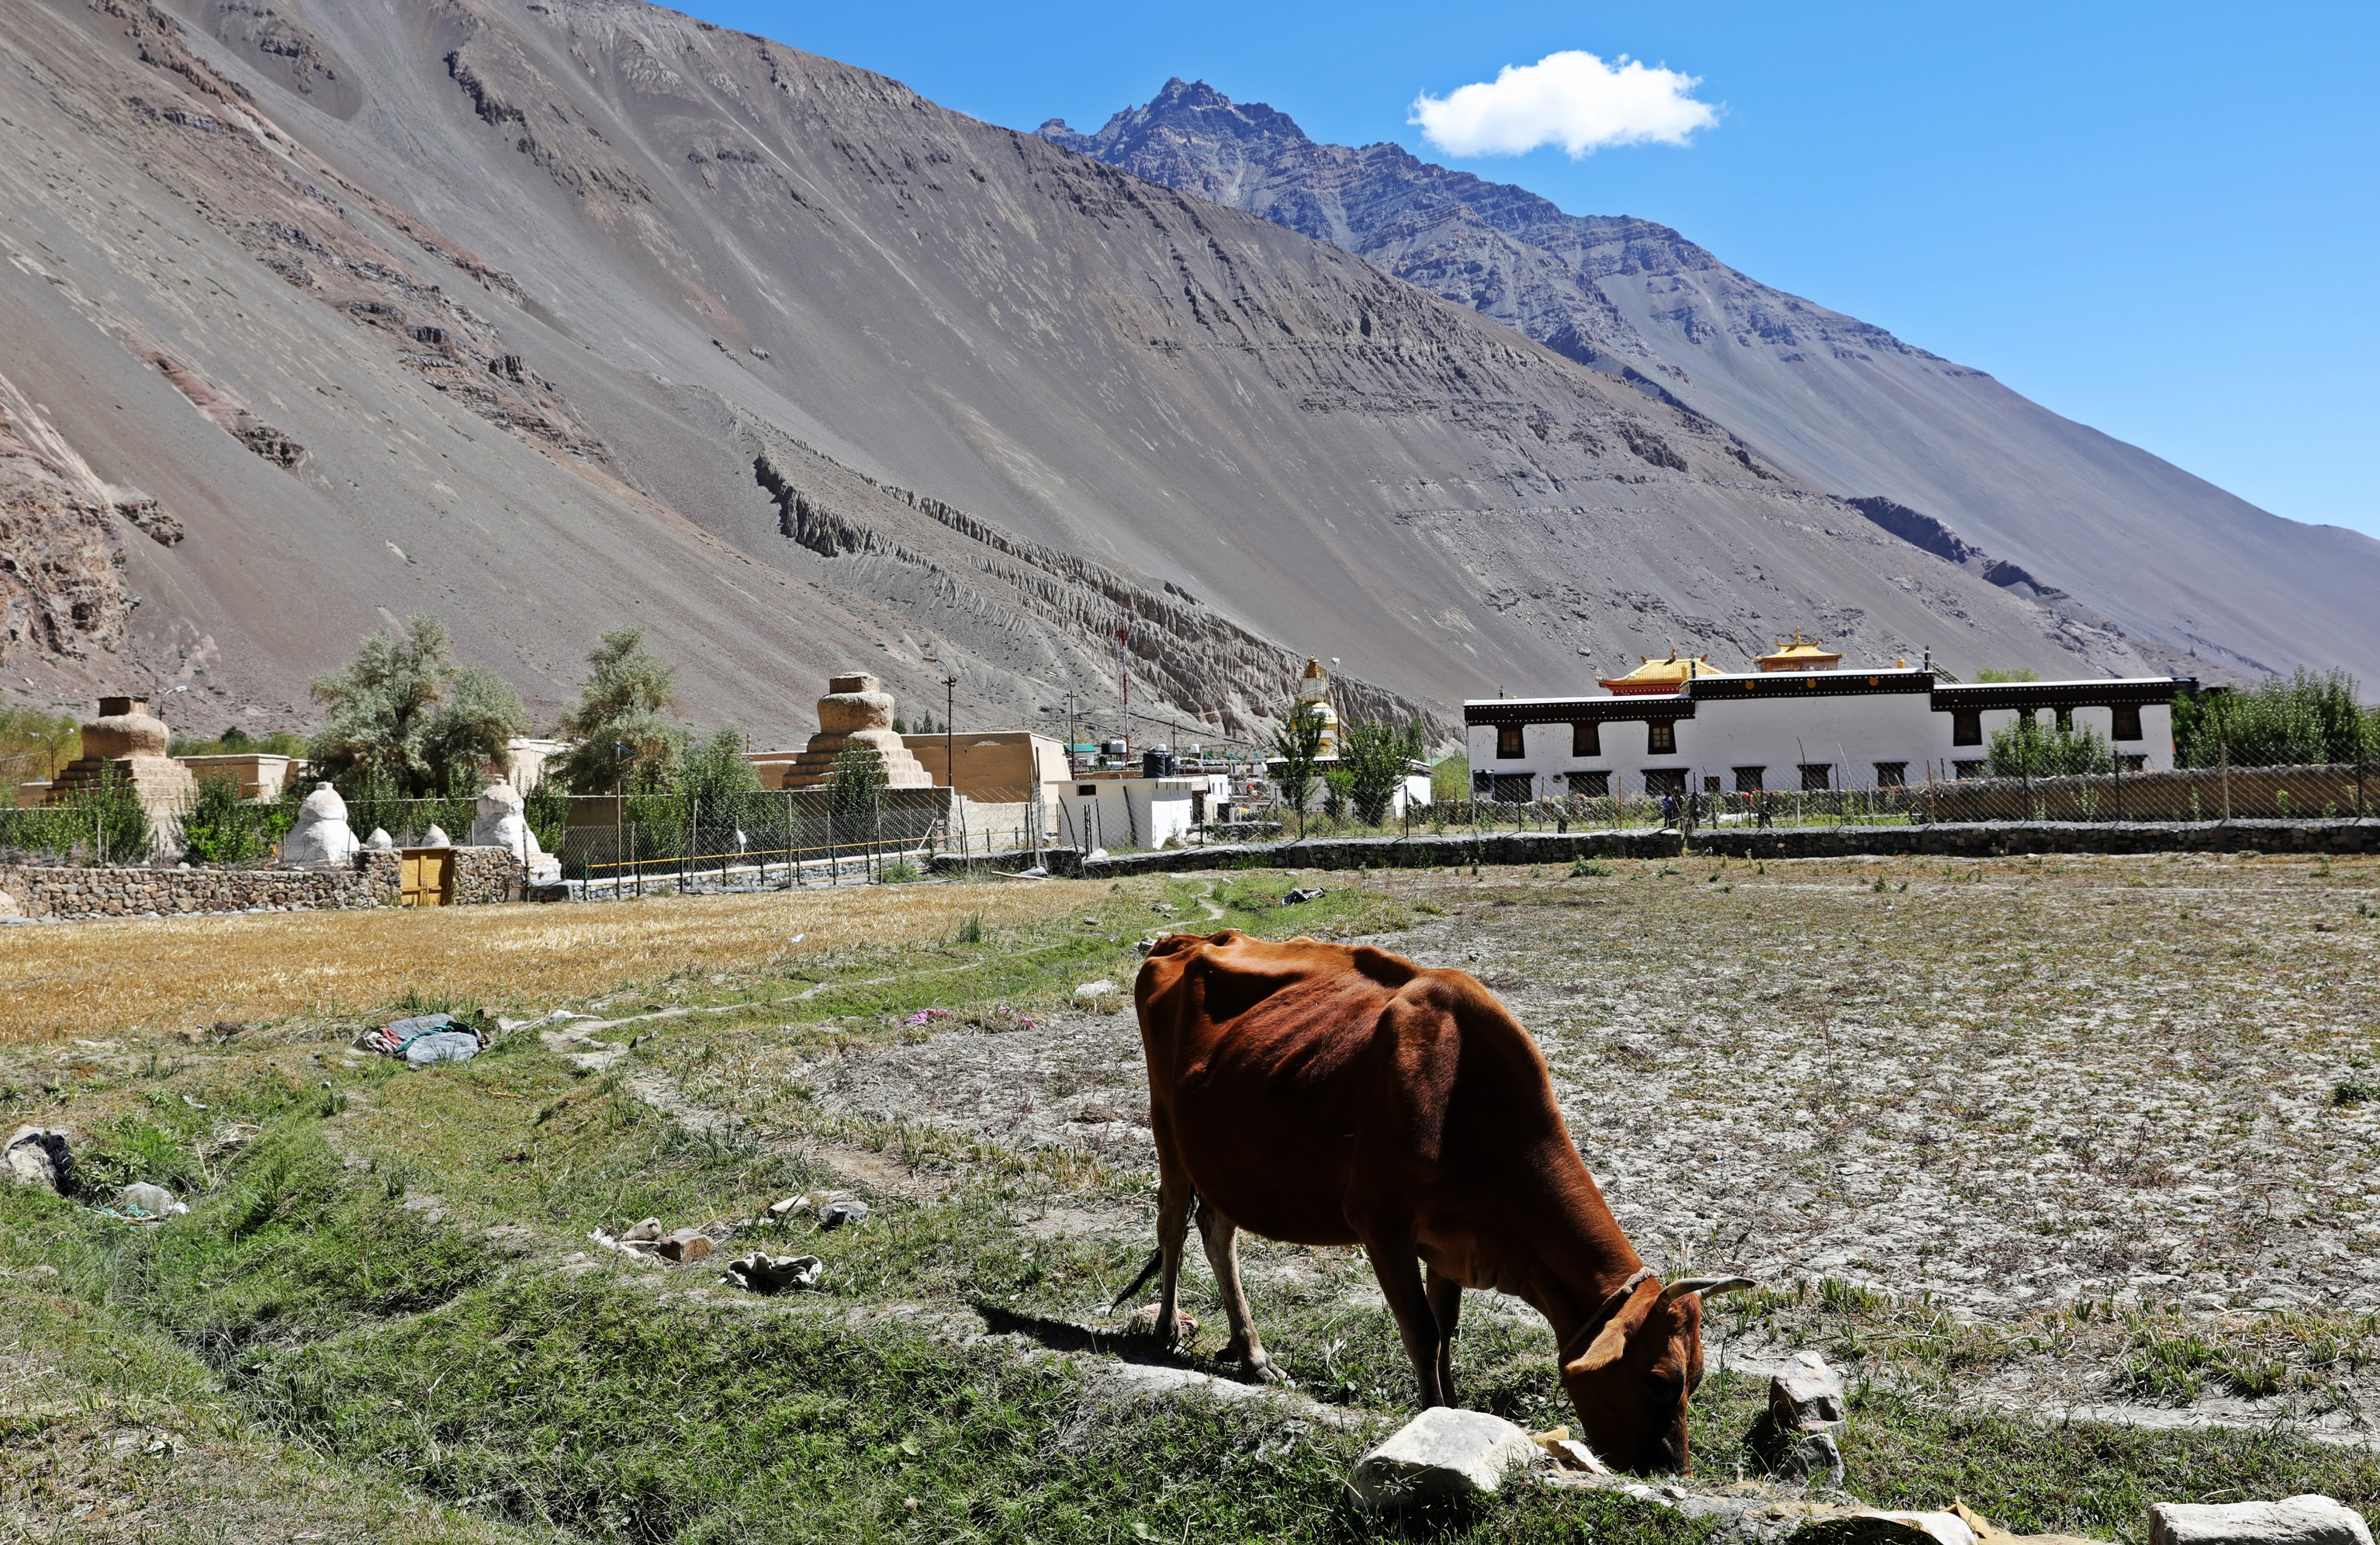 Fields around Tabo Gompa, Himachal Pradesh